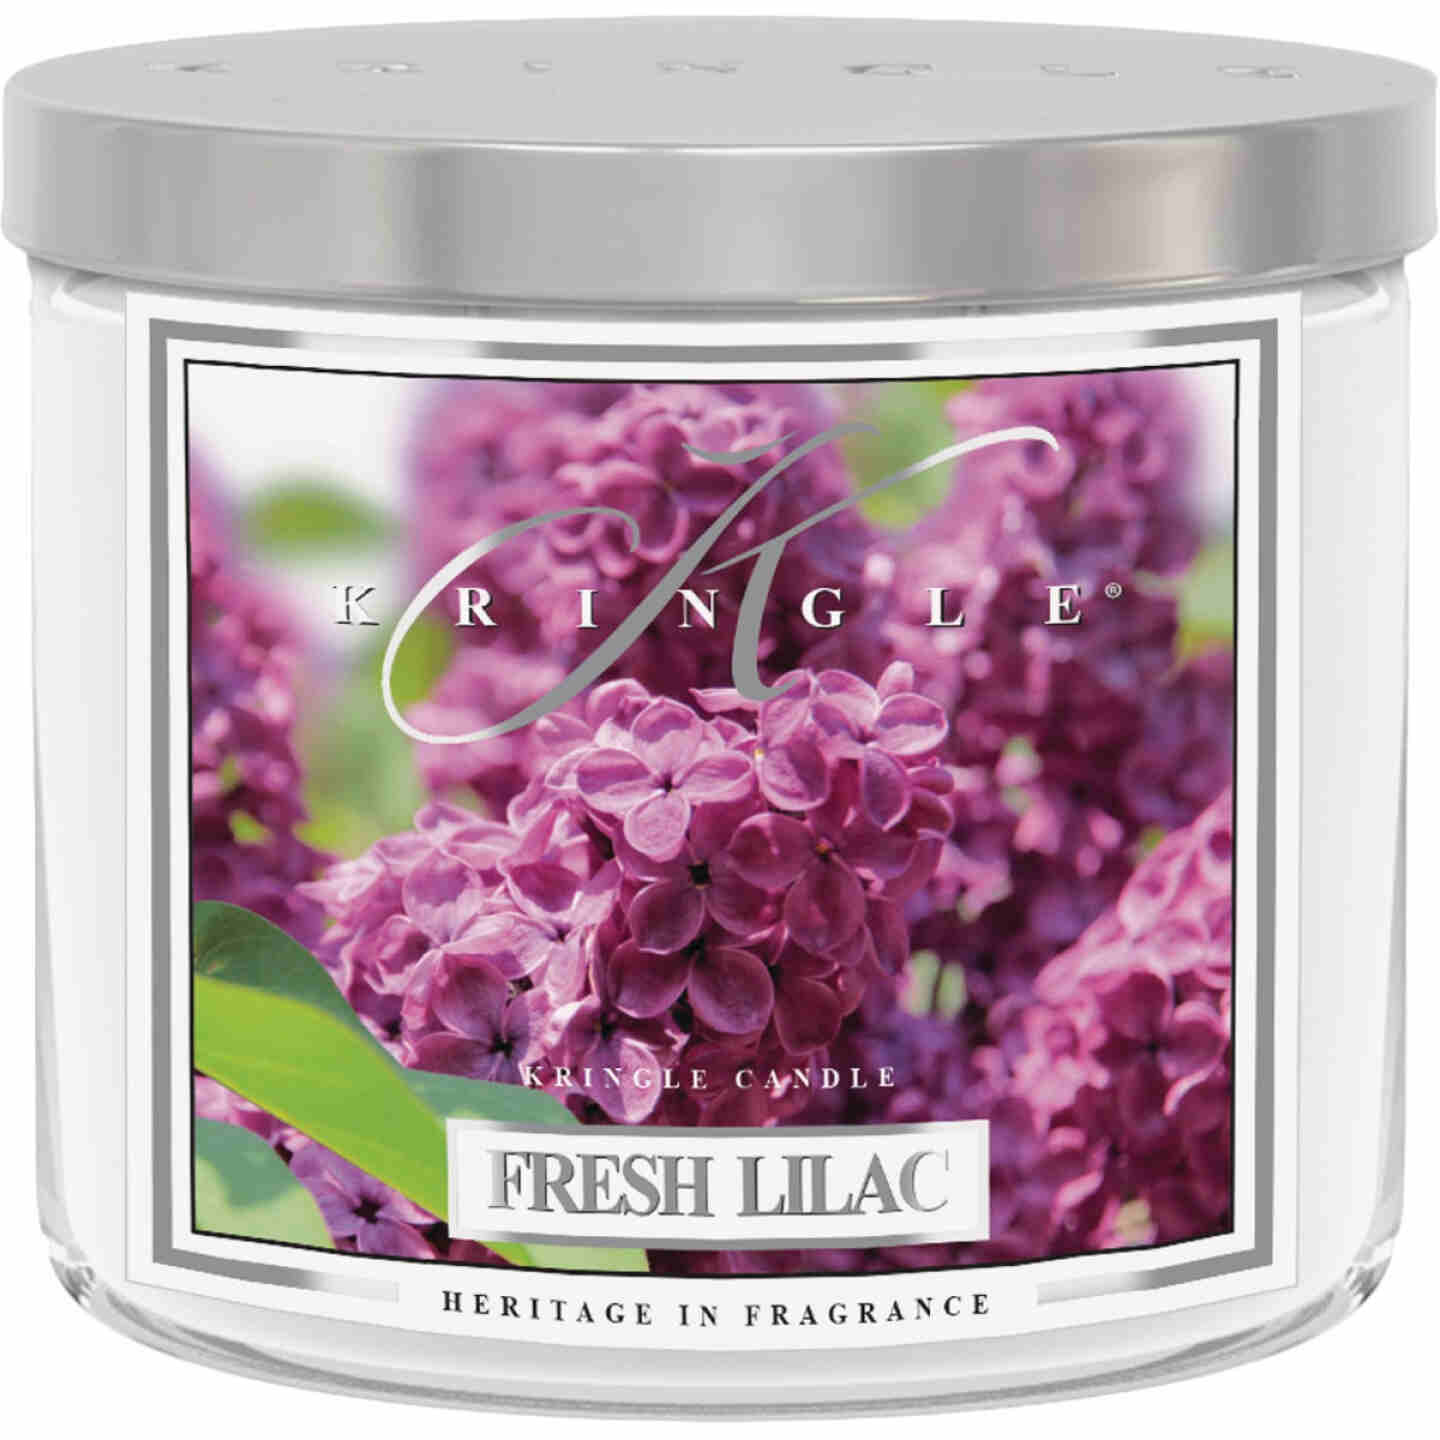 Kringle Candle 14.5 Oz. Fresh Lilac 3-Wick Soy Jar Candle Image 1